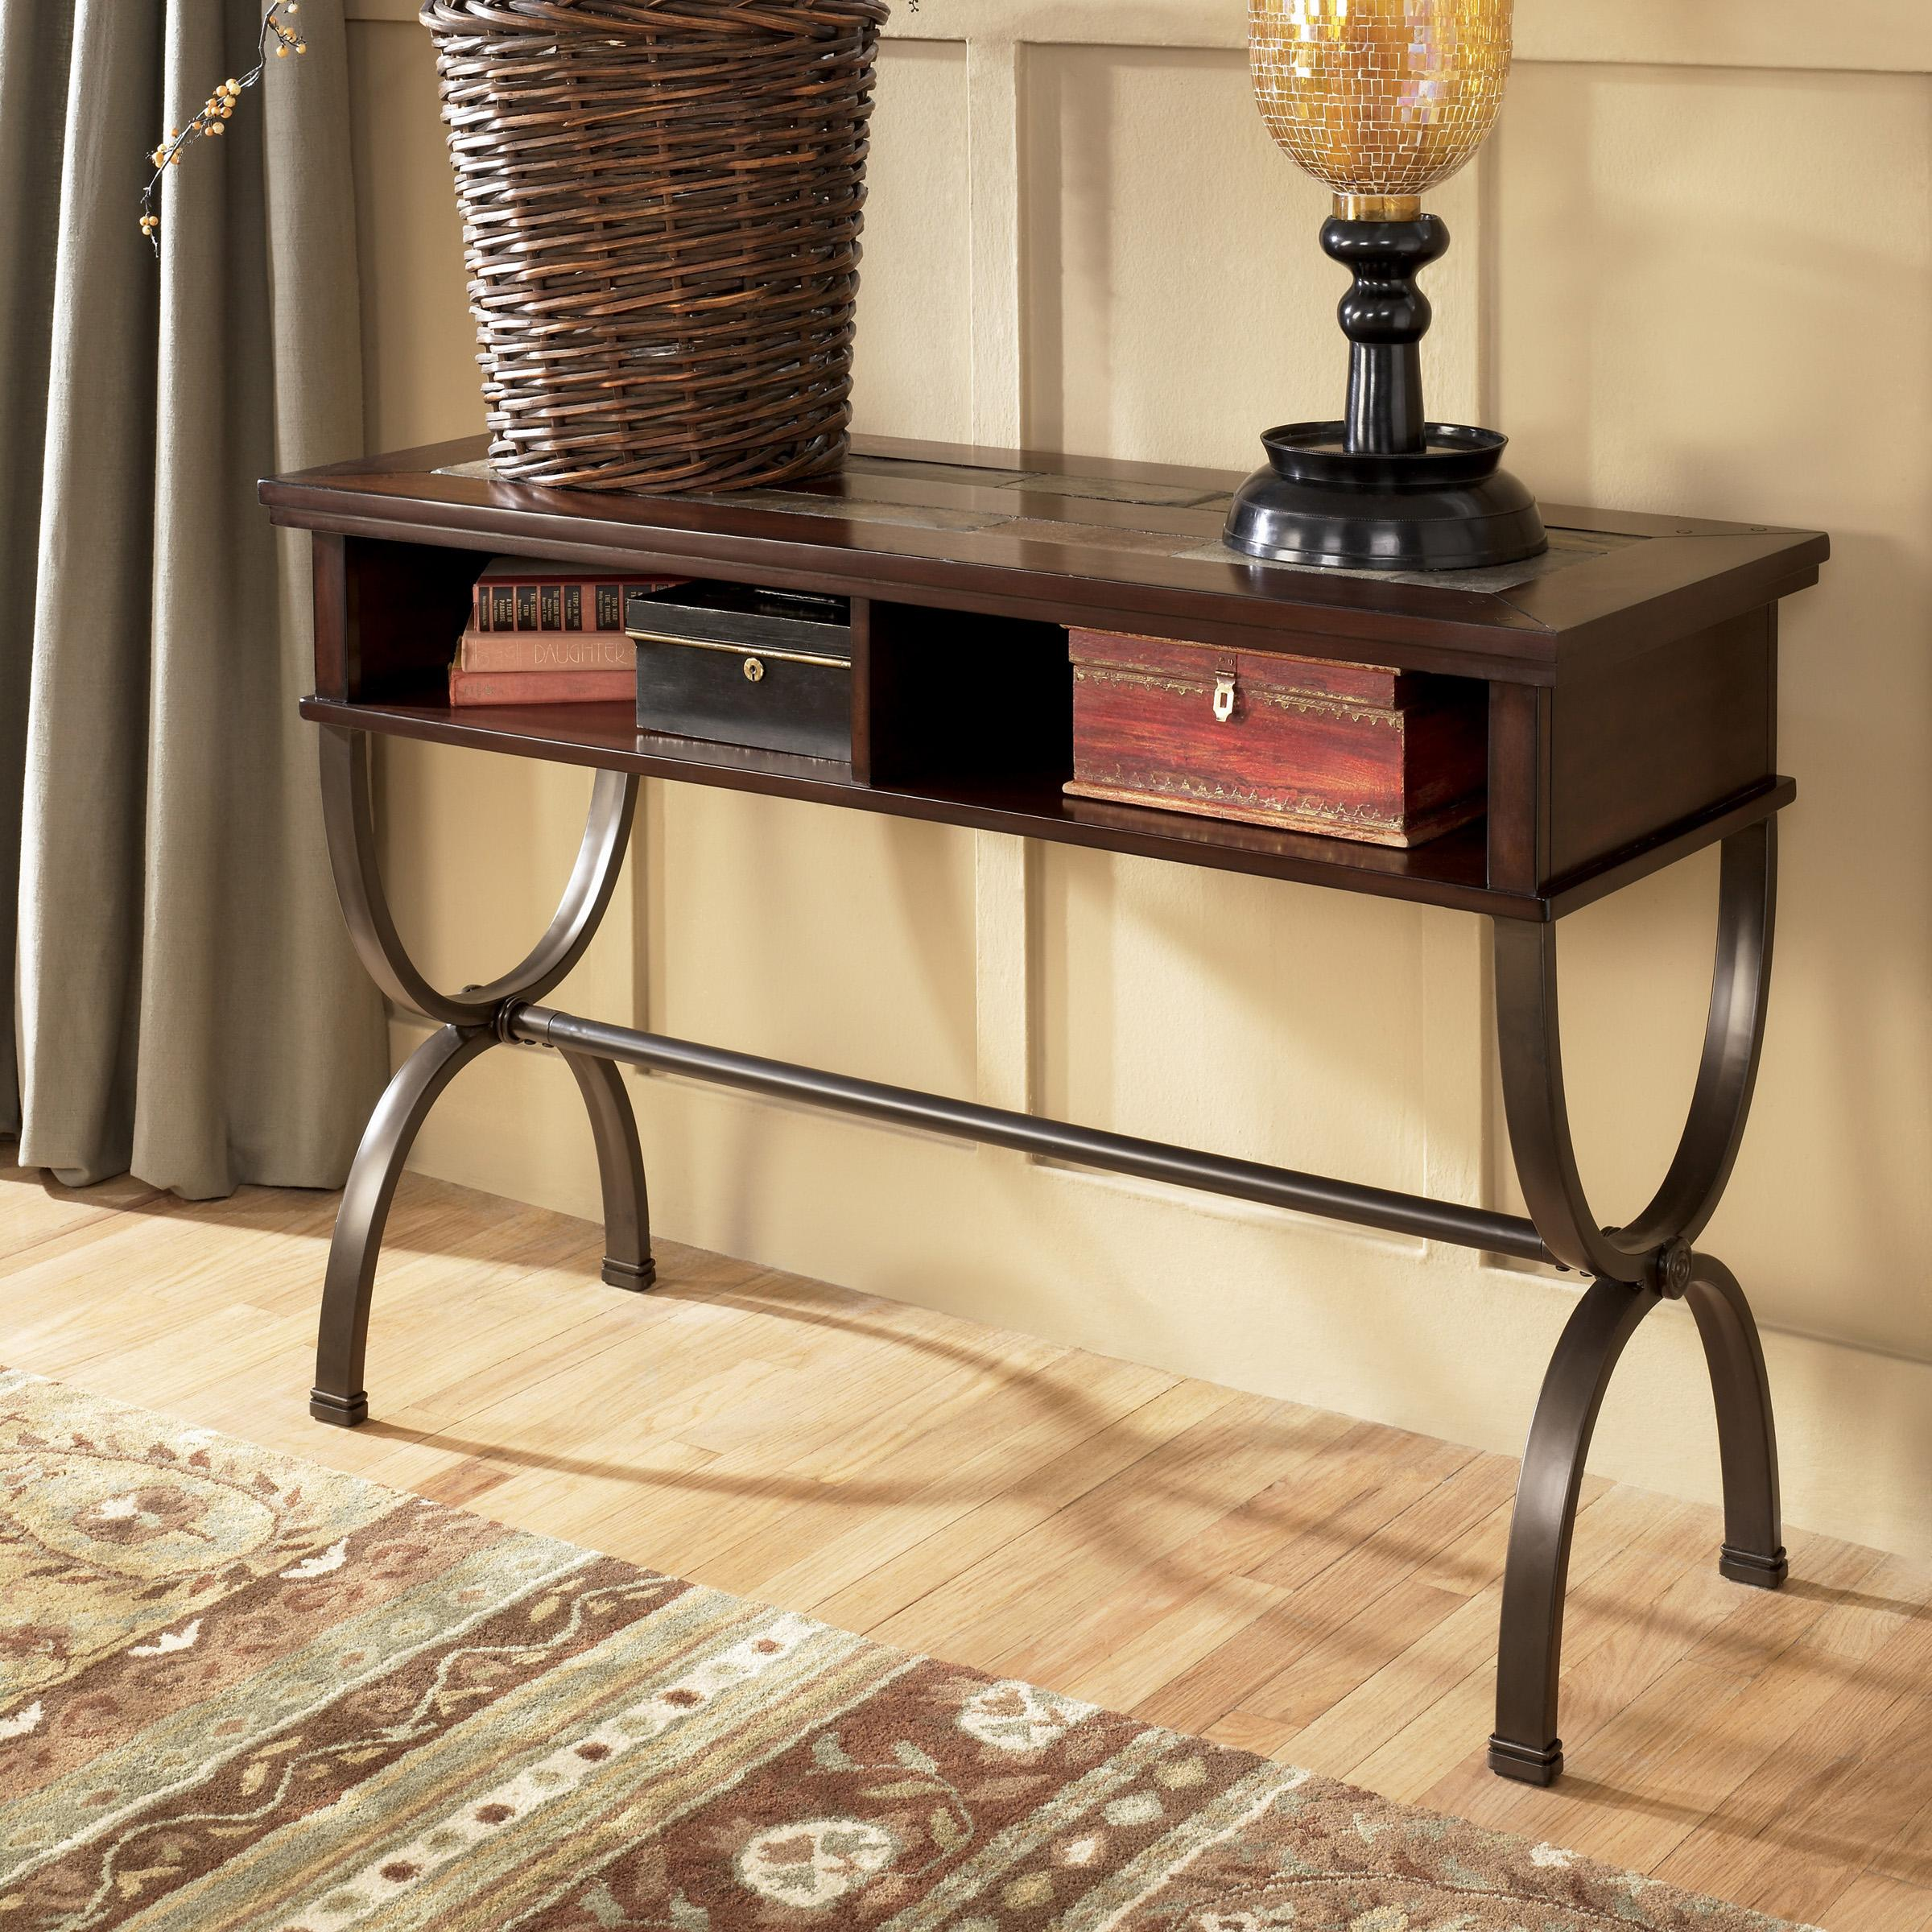 Signature Design by Ashley Zander Sofa/Console Table - Item Number: T415-4